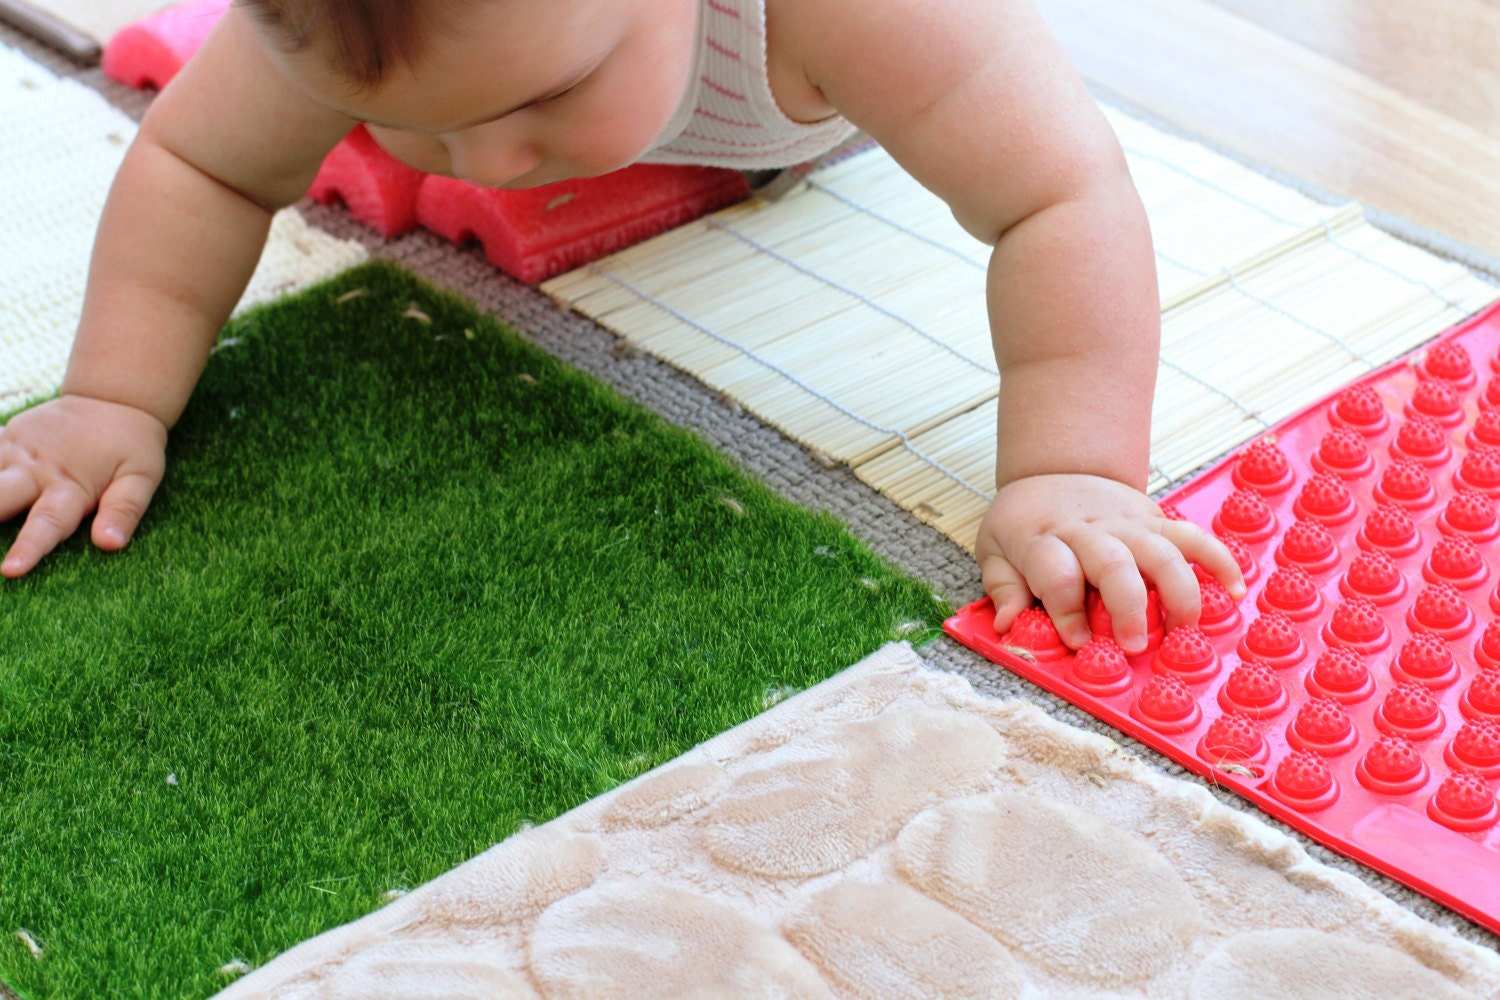 Floor mats kenya - Sensory Play Rug Quite Time Mat Sensory Activity Mat Toddler Present Baby Gift Busy Board Alternative Fidget Blanket Alternative Massage Rug